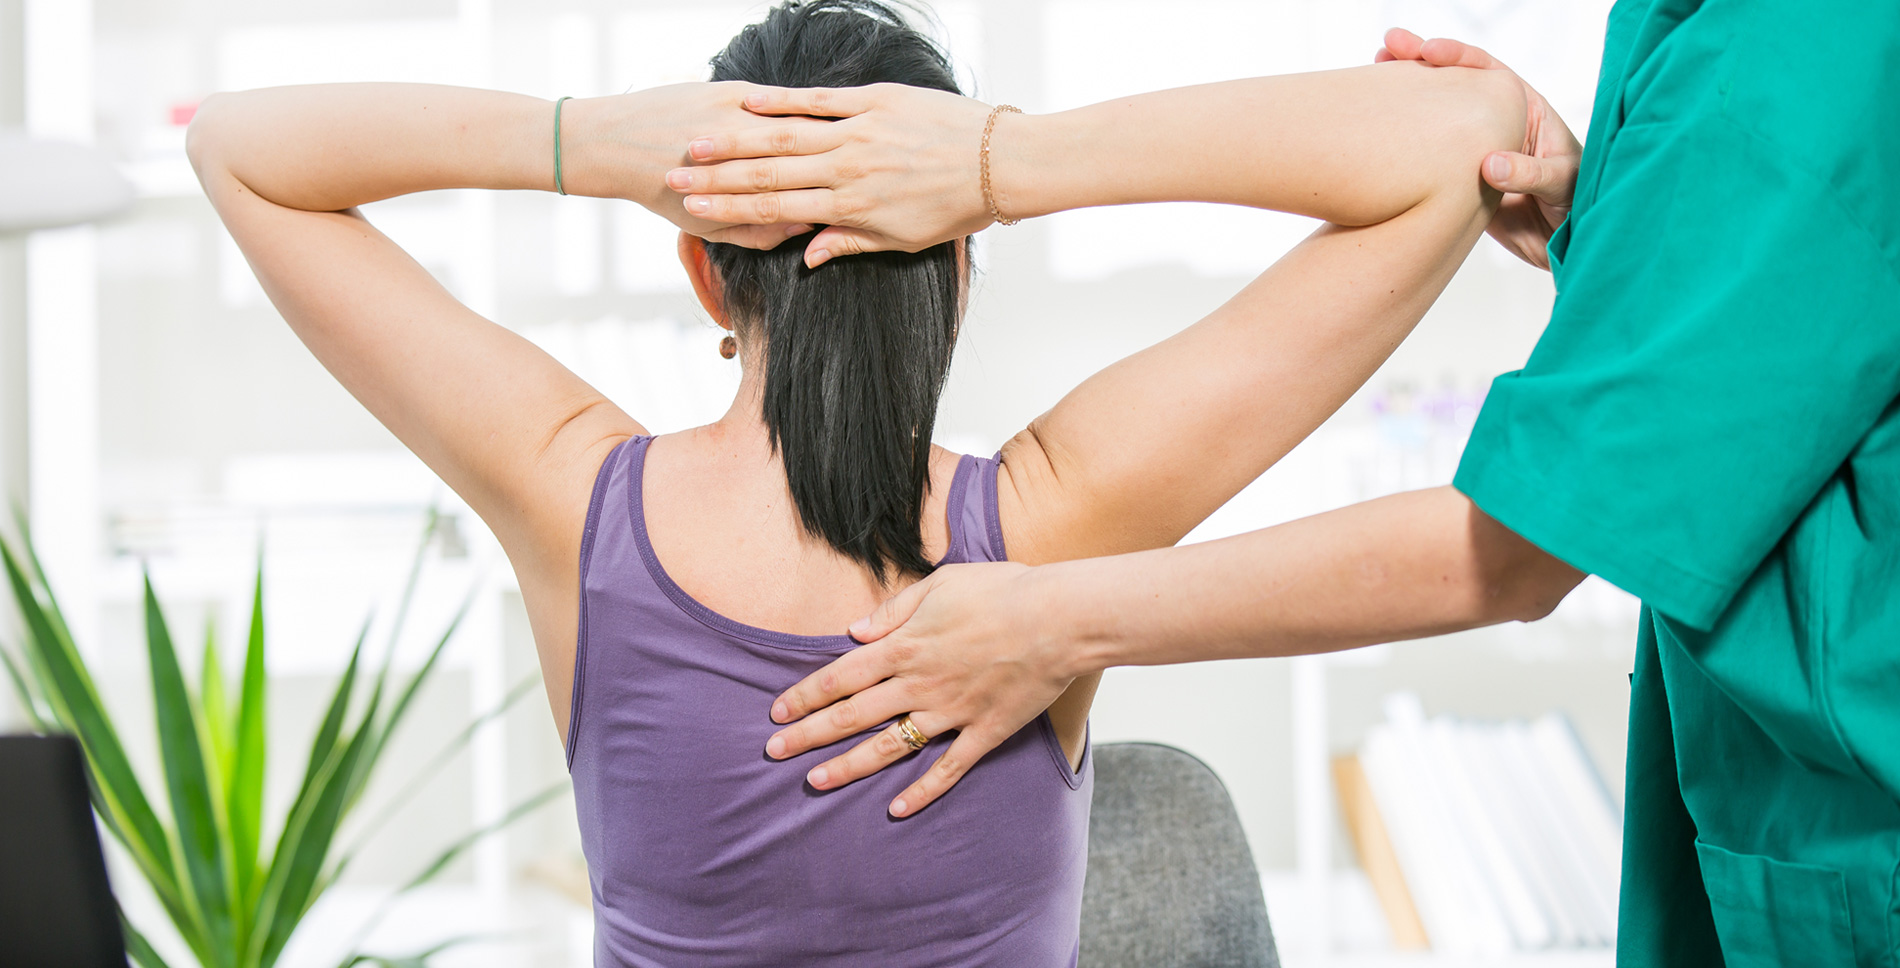 Woman receiving chiropractic adjustment from chiropractor